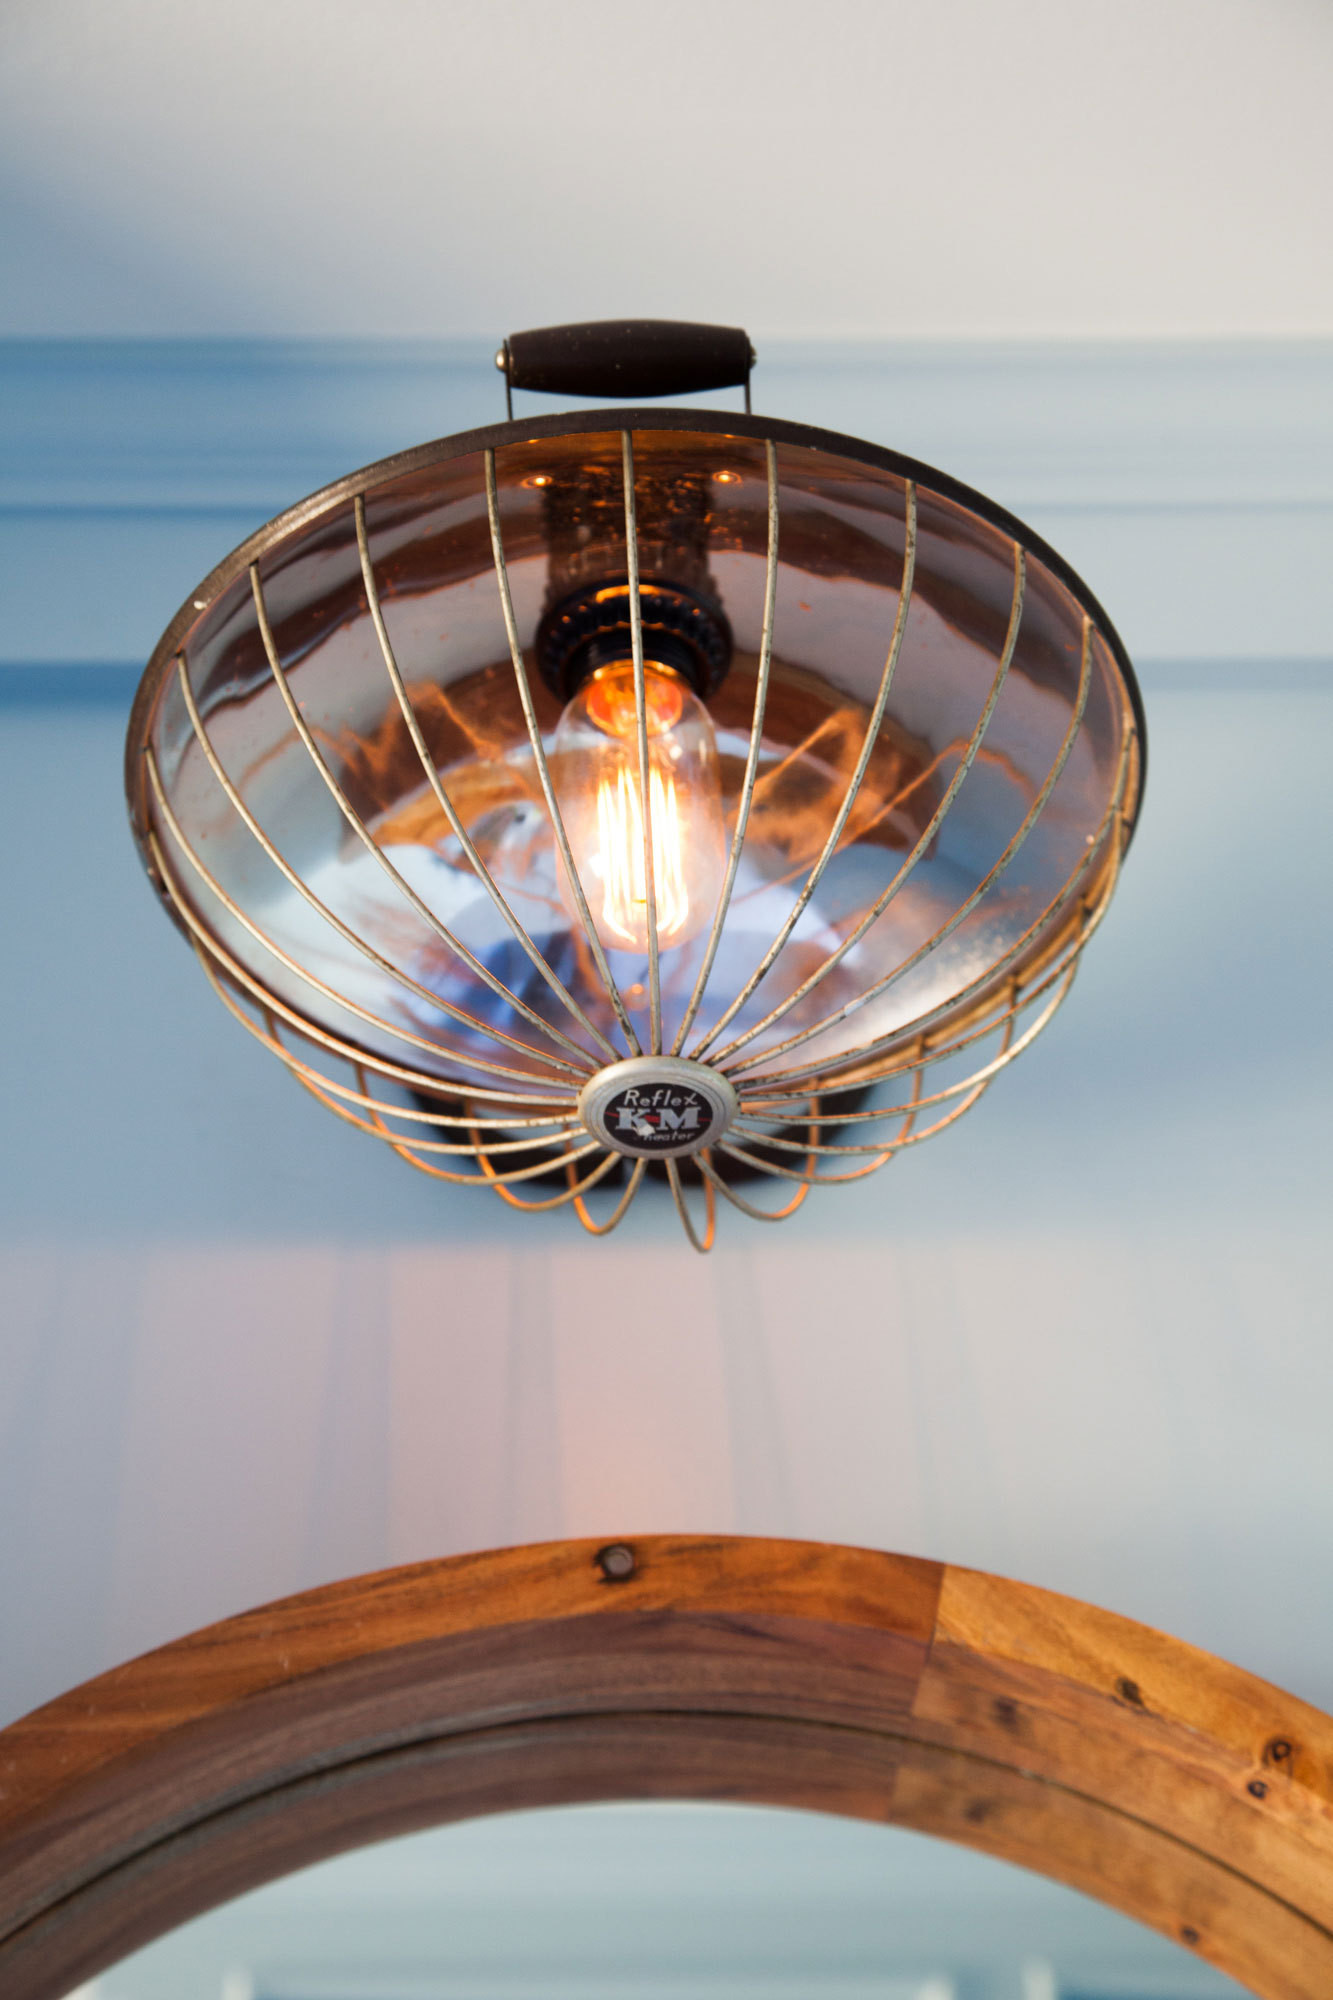 An antique fixture from Old Portland Hardware & Architectural adds an unexpectedly industrial note.